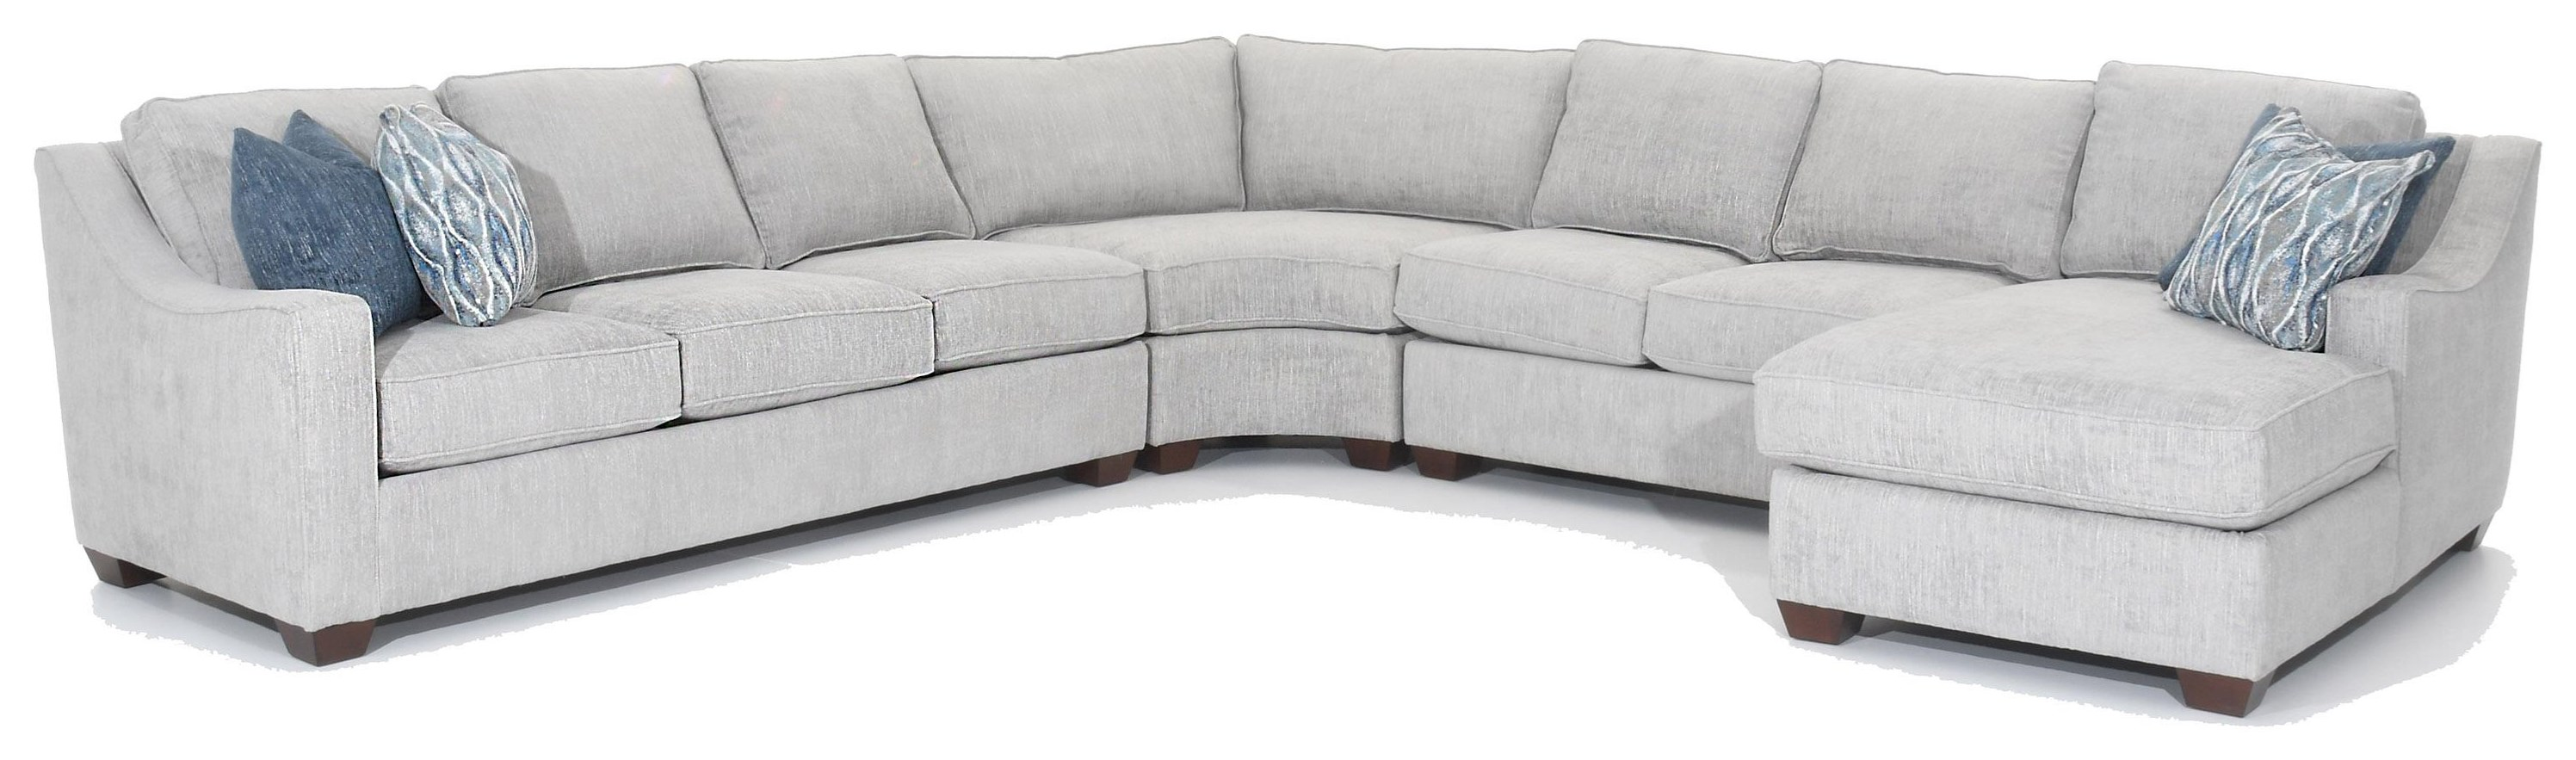 Multiple Choices 4 Pc Sectional by Precedent at Baer's Furniture